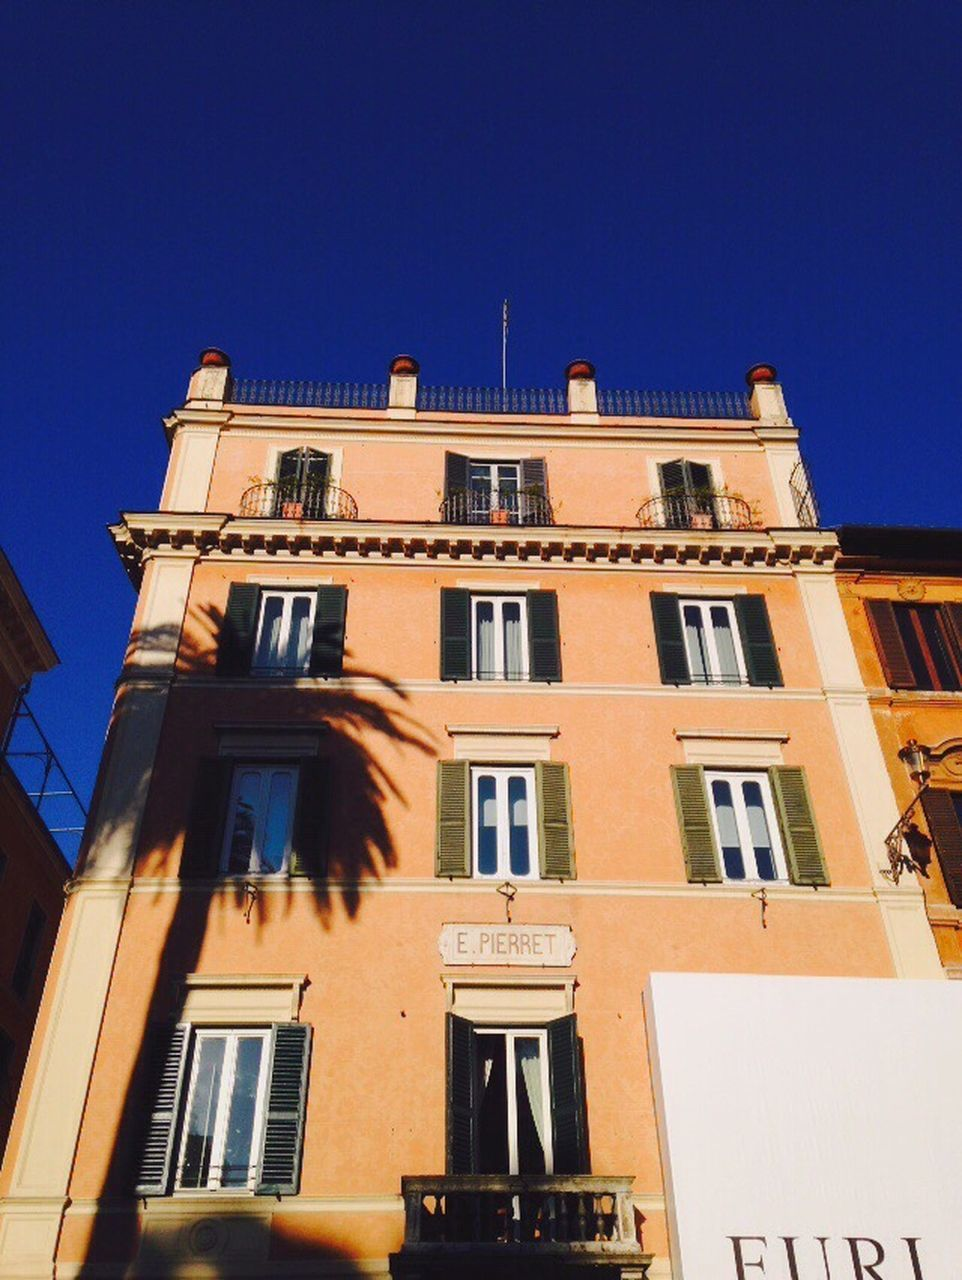 building exterior, architecture, built structure, window, low angle view, sky, clear sky, building, blue, no people, city, nature, facade, residential district, sunlight, outdoors, day, shadow, sunny, balcony, apartment